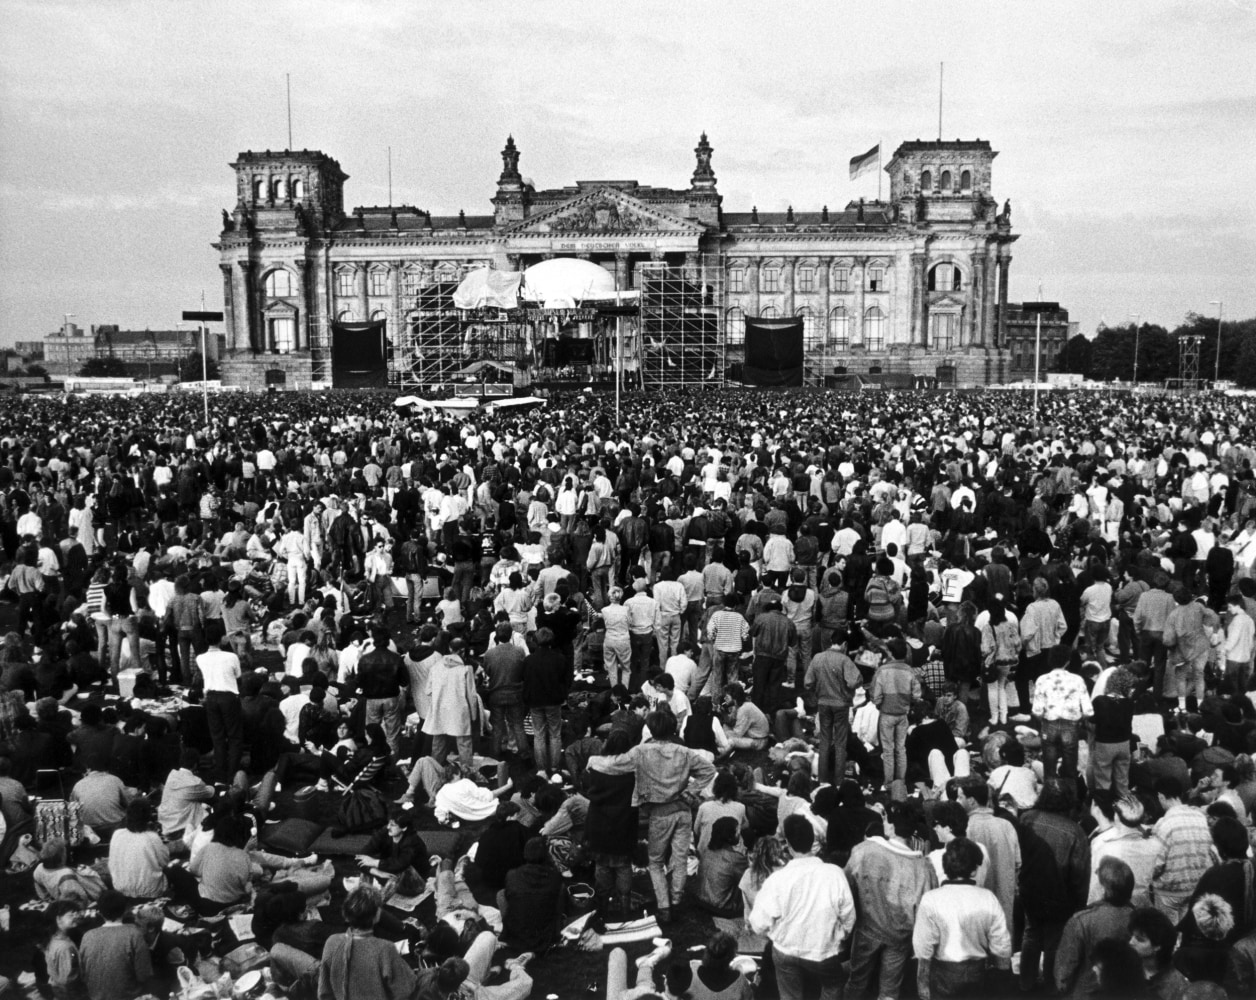 "1987, june 6 - Reichstag, Berlin. David BOWIE - ""We can be hero's for one day"". The next day, the Berlin wall fell."